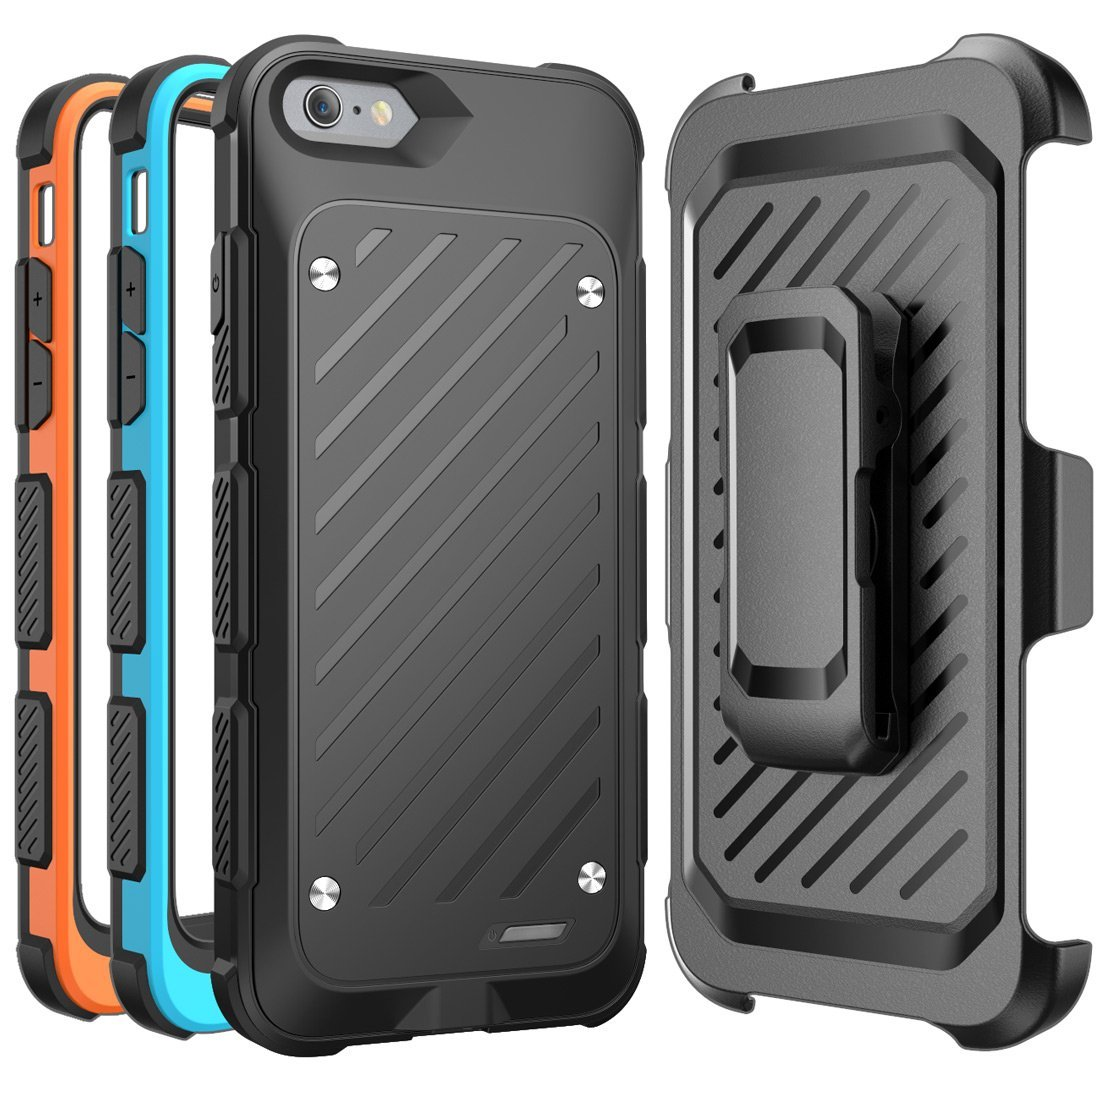 best iphone 6s battery case, best iphone 6s battery cases, iphone 6s battery case, iphone battery cases